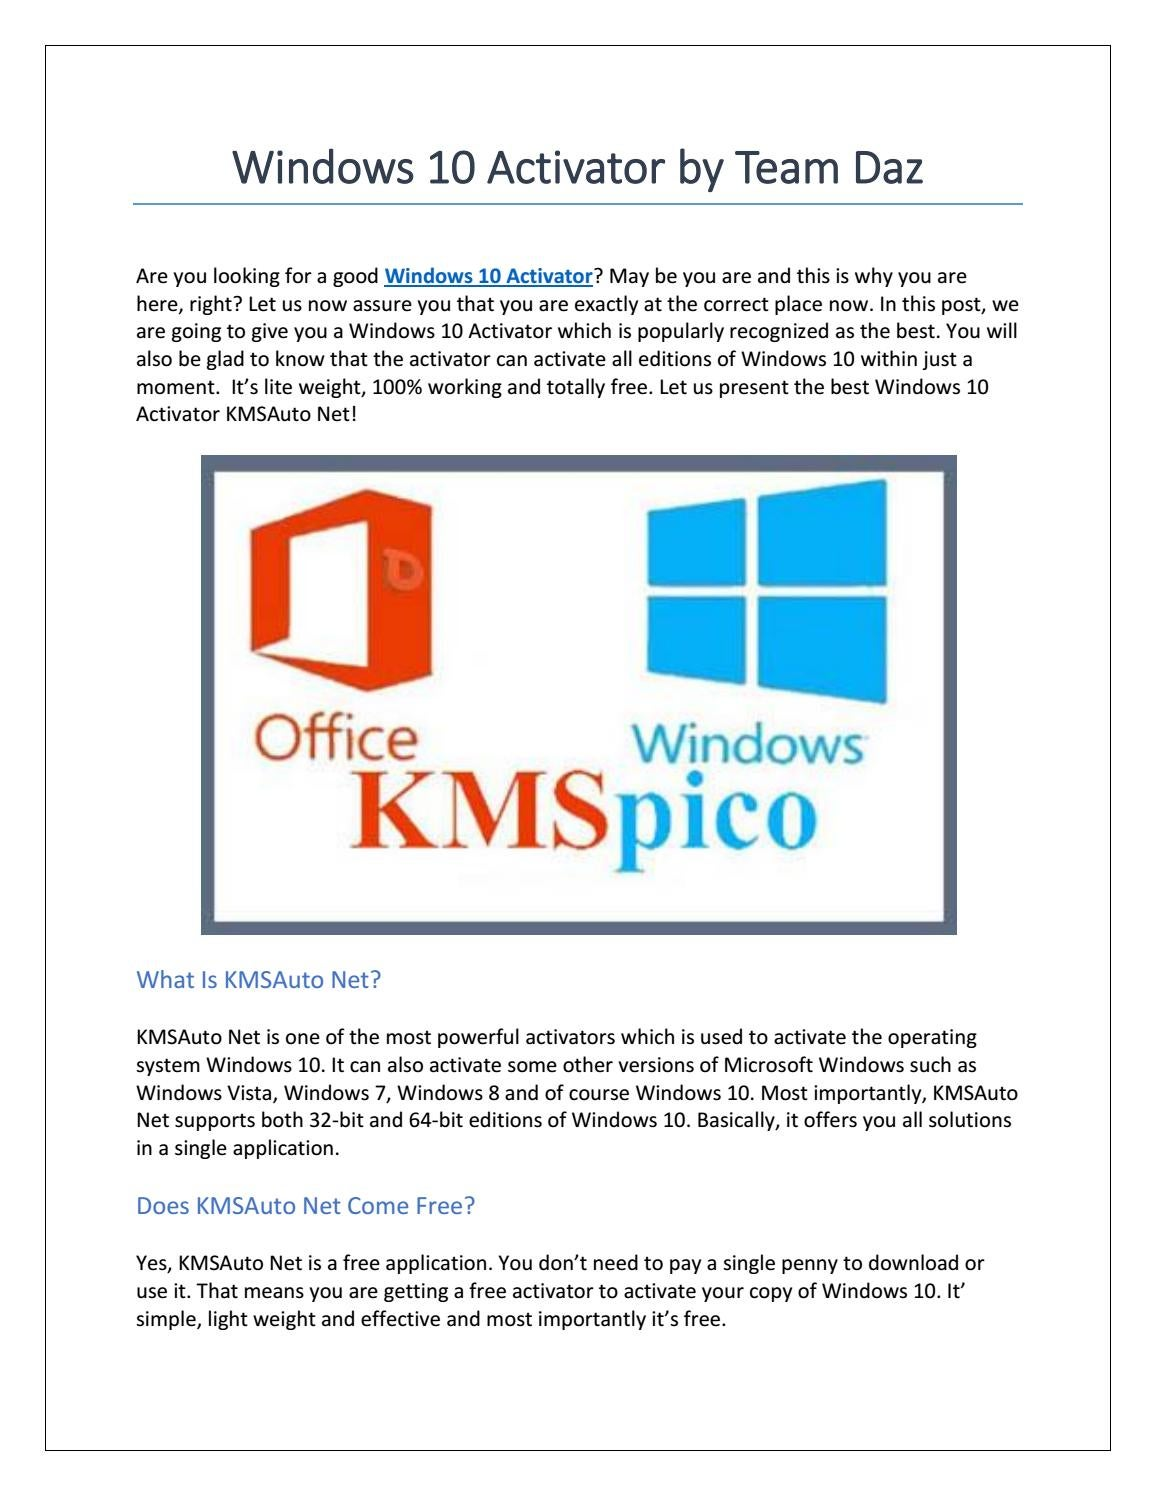 kmspico activate windows 10